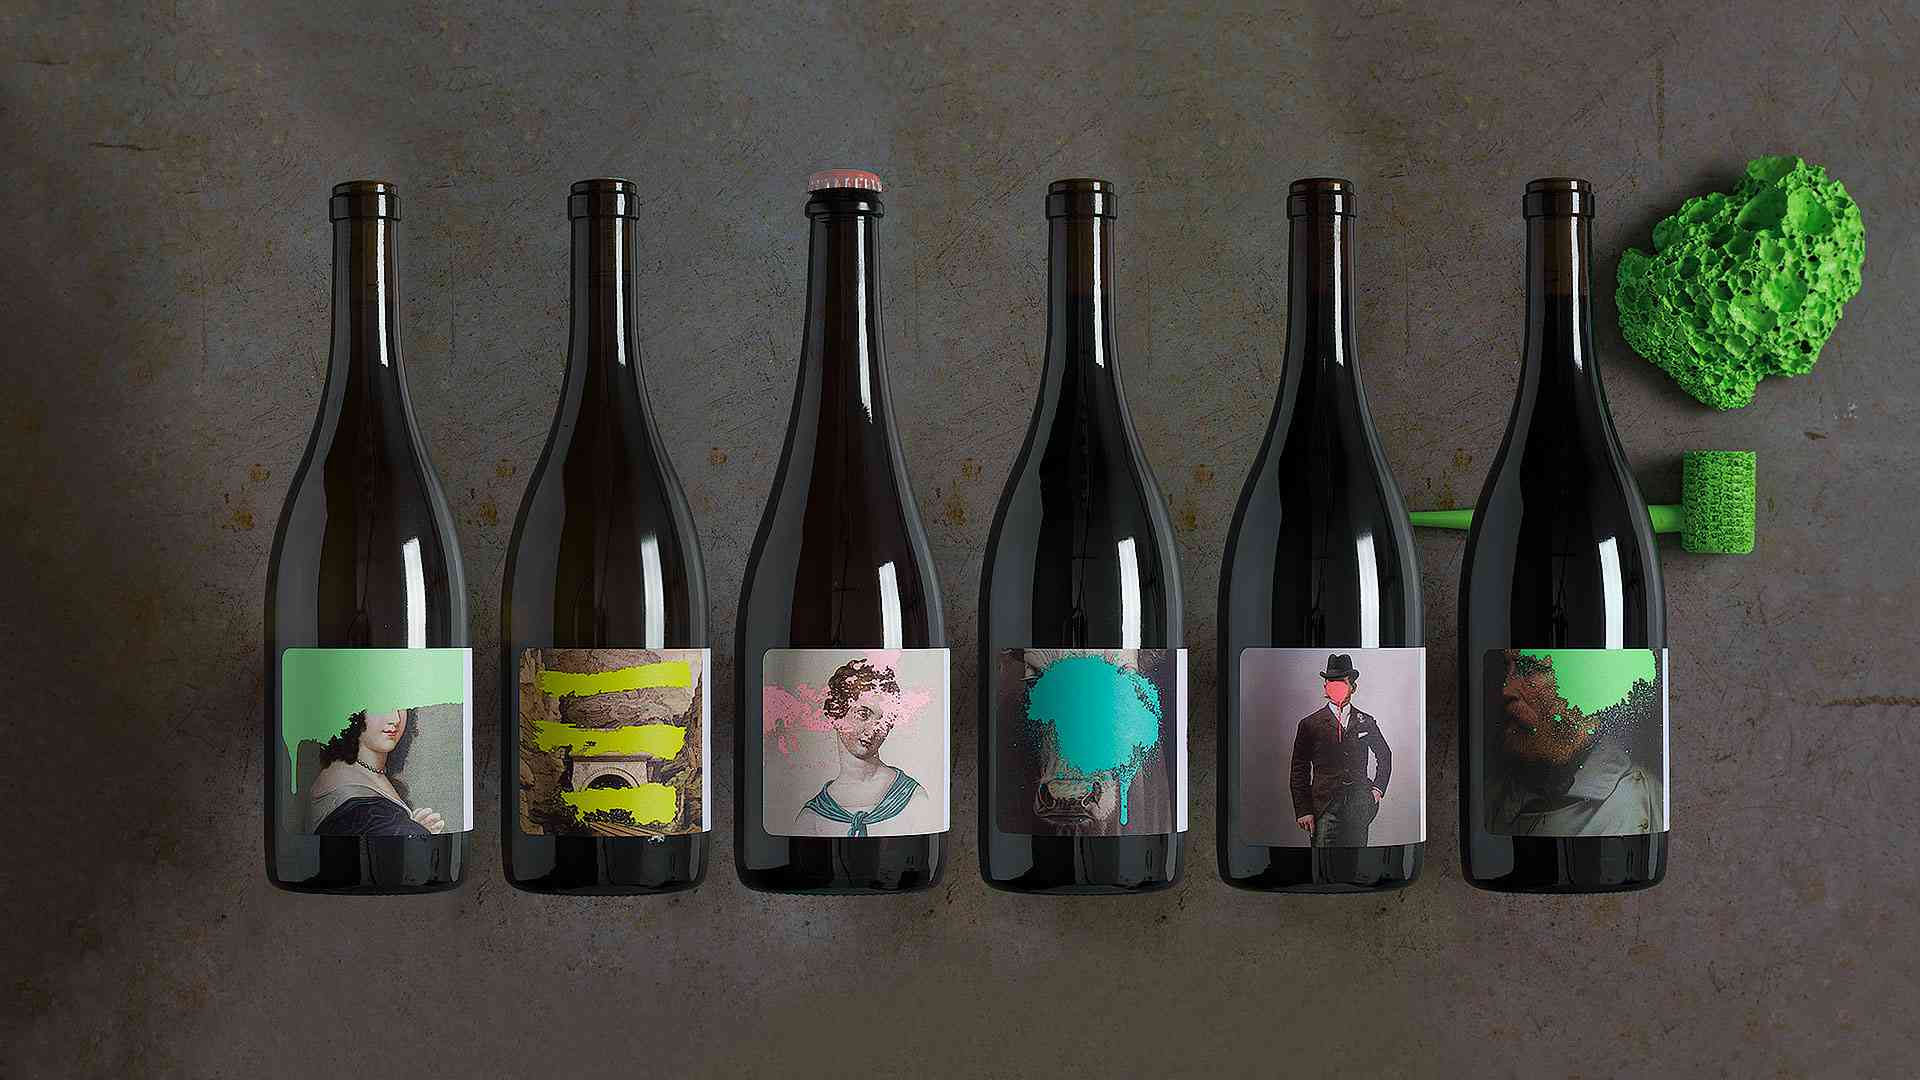 Pretty Wines - Graphic Design - Packaging, Labels, Wine ... |Wine Bottle Graphic Design